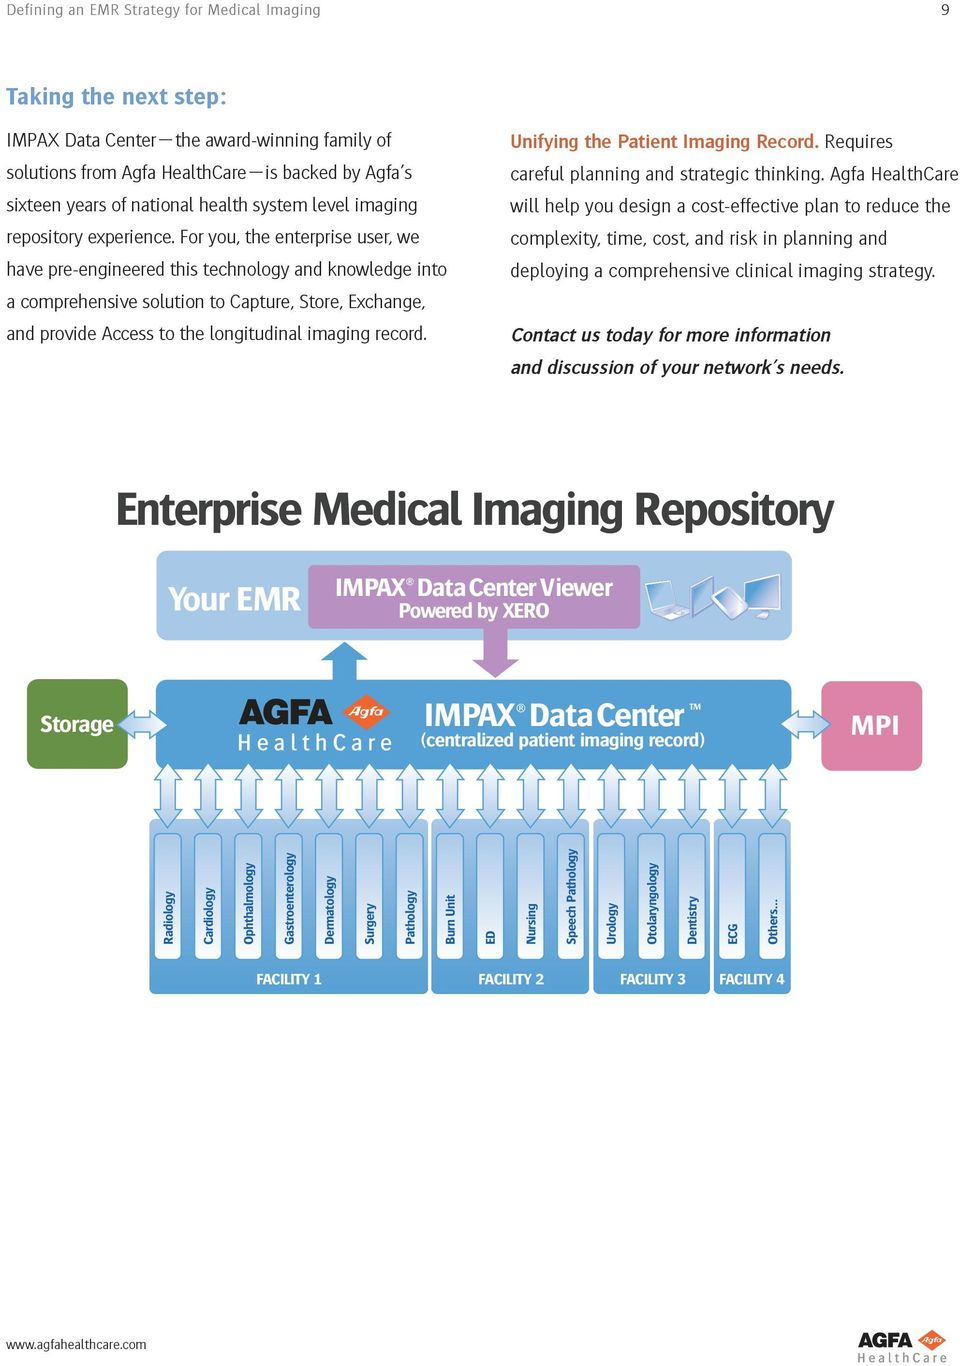 For you, the enterprise user, we have pre-engineered this technology and knowledge into a comprehensive solution to Capture, Store, Exchange, and provide Access to the longitudinal imaging record.